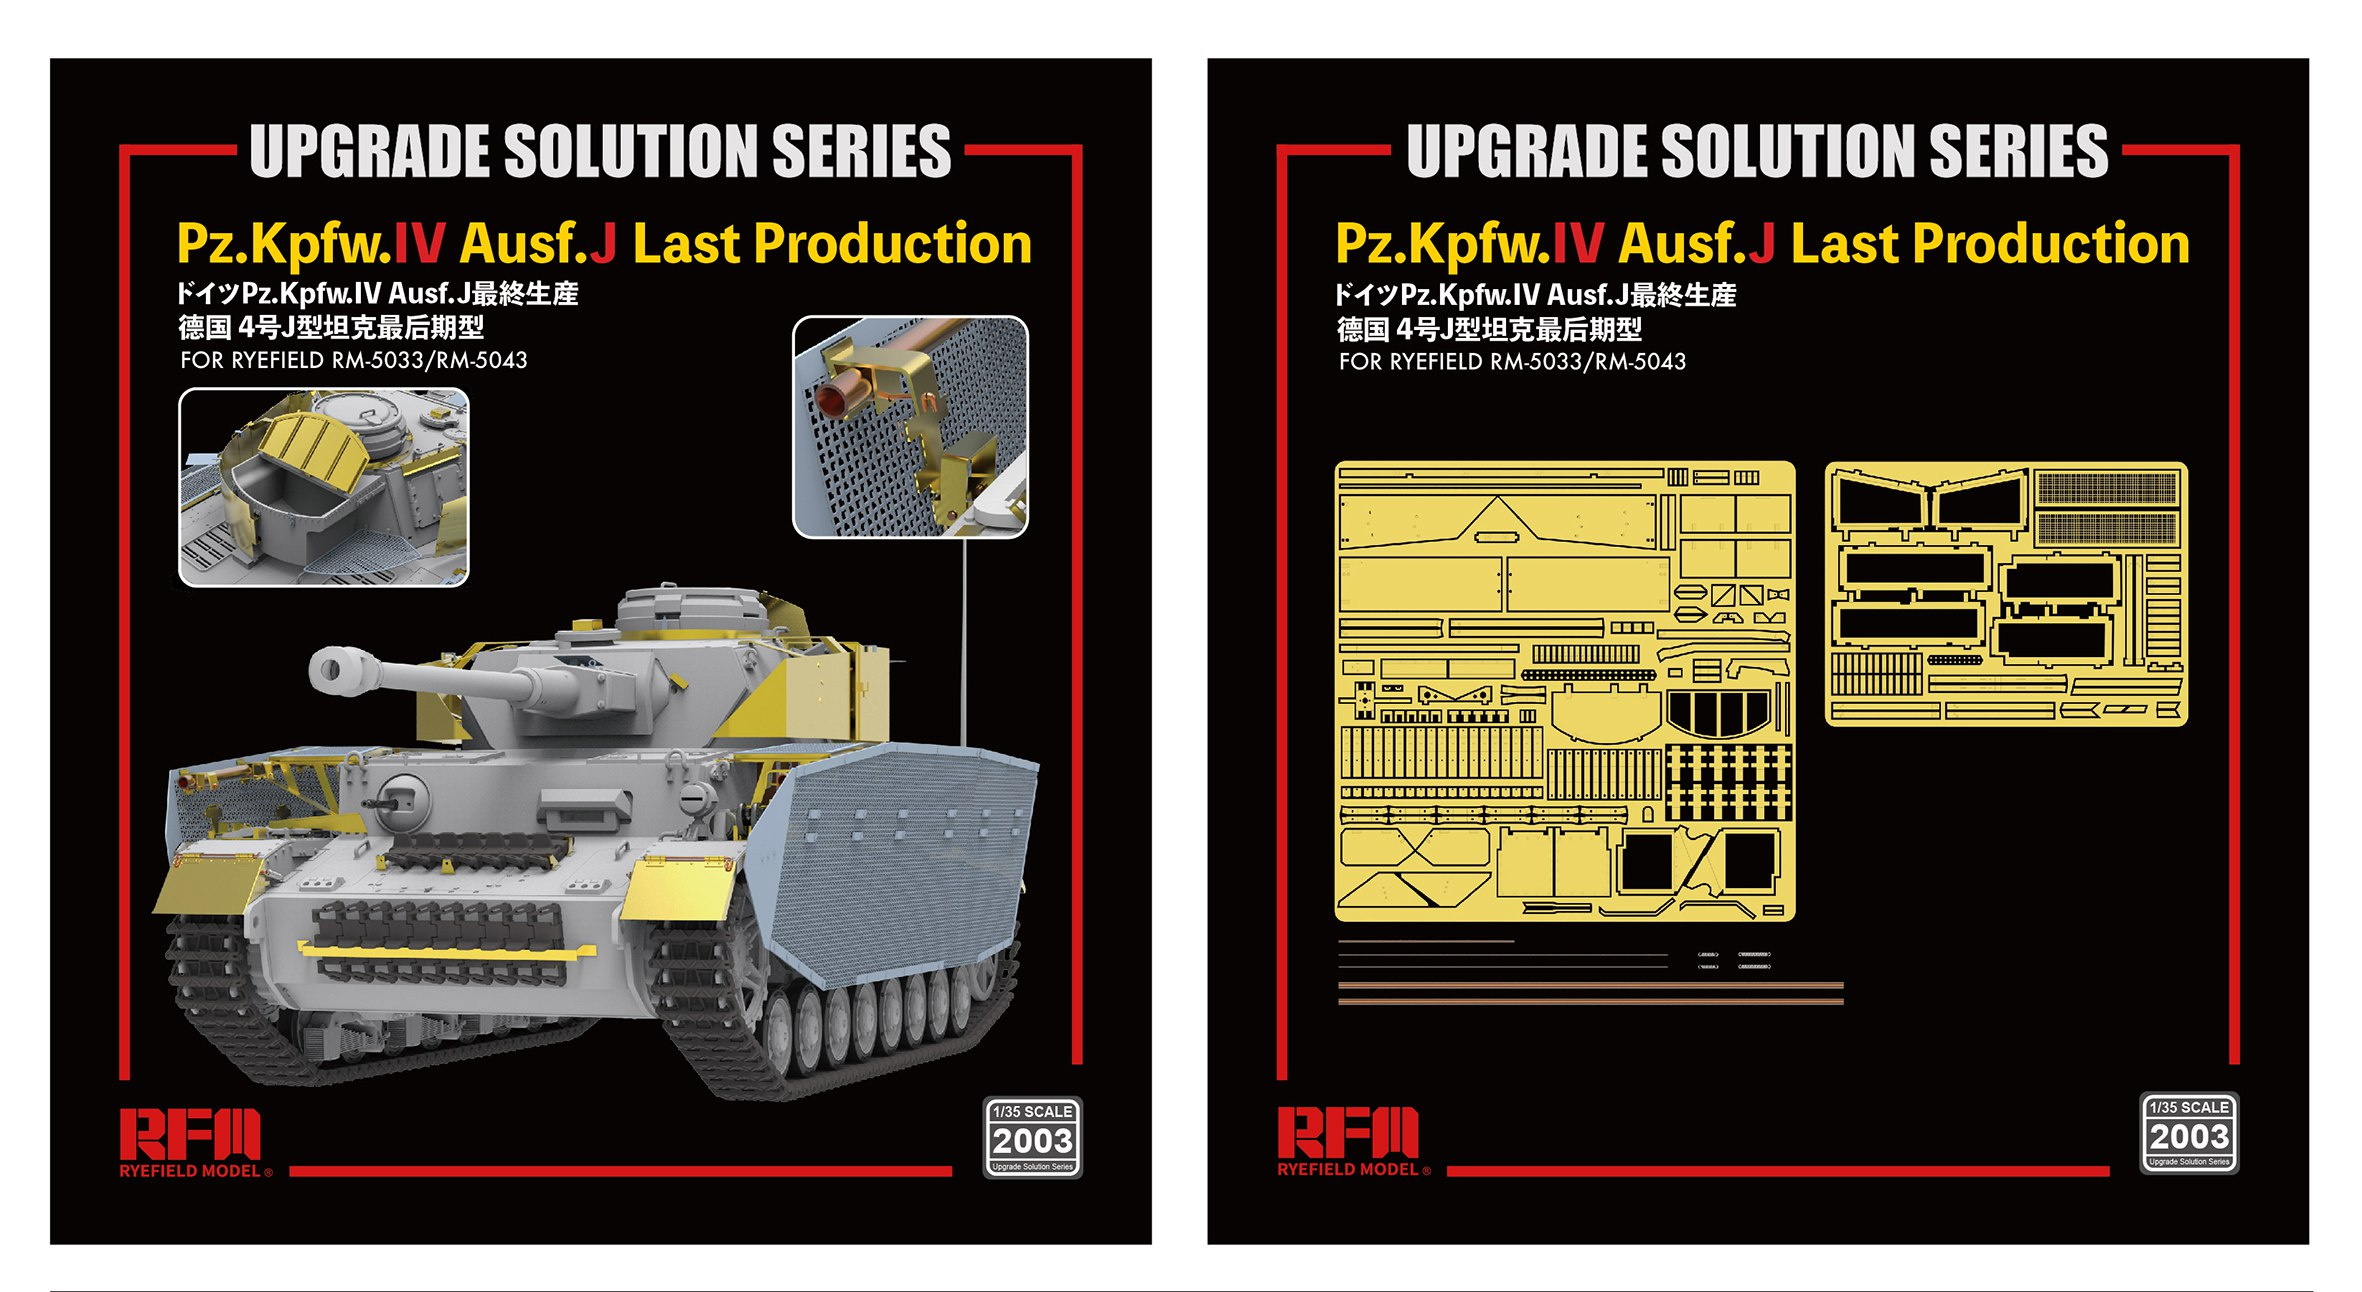 RM-2003 Pz.Kpfw.IV Ausf.J Last Production UPGRADE SOLUTION SERIES